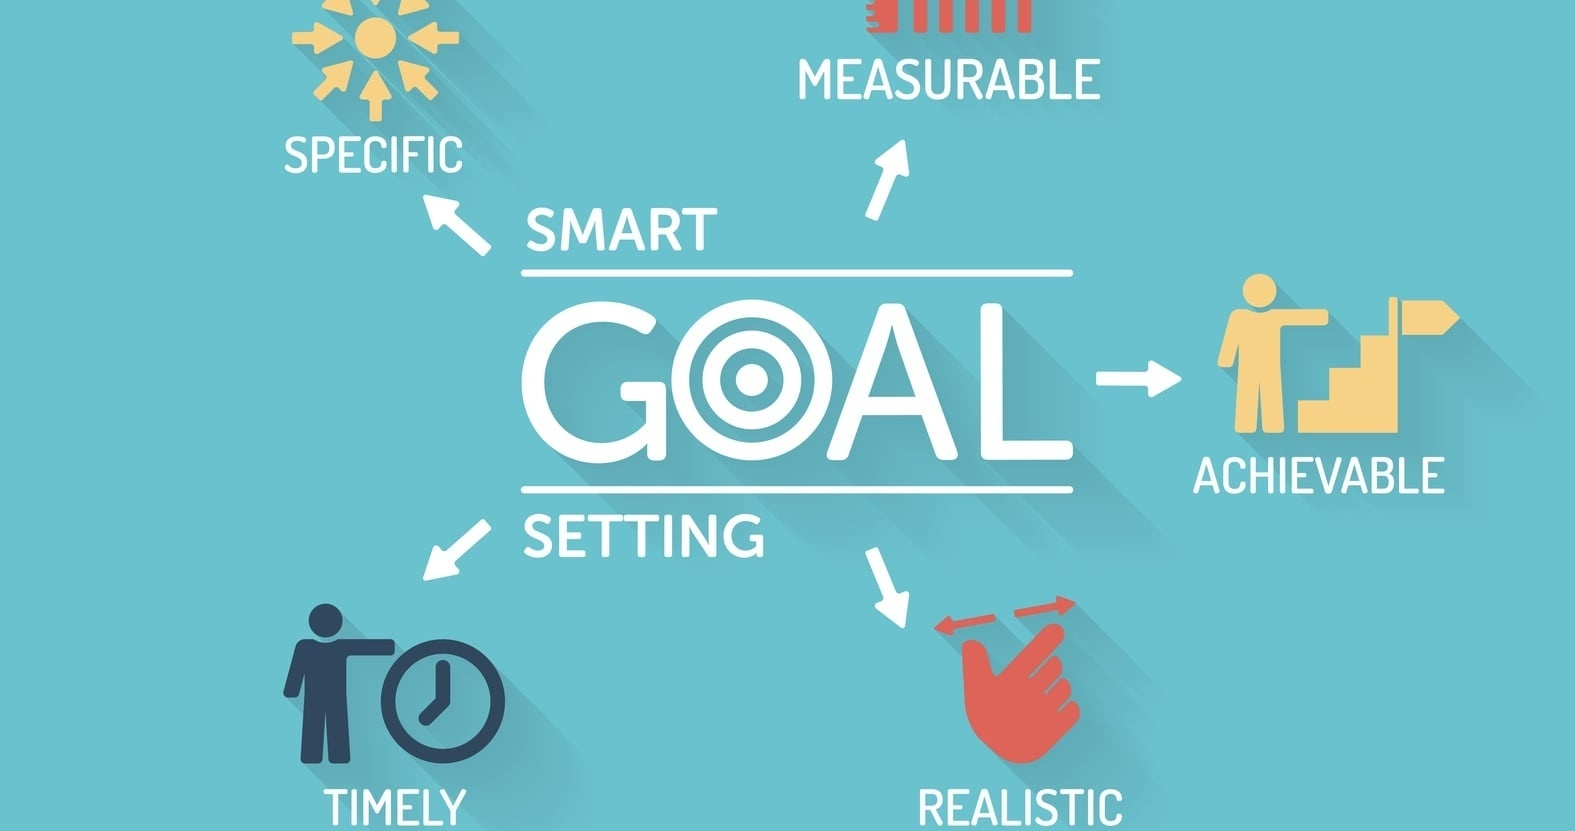 10 Contextual Smart Goal Examples That Will Help You Succeed